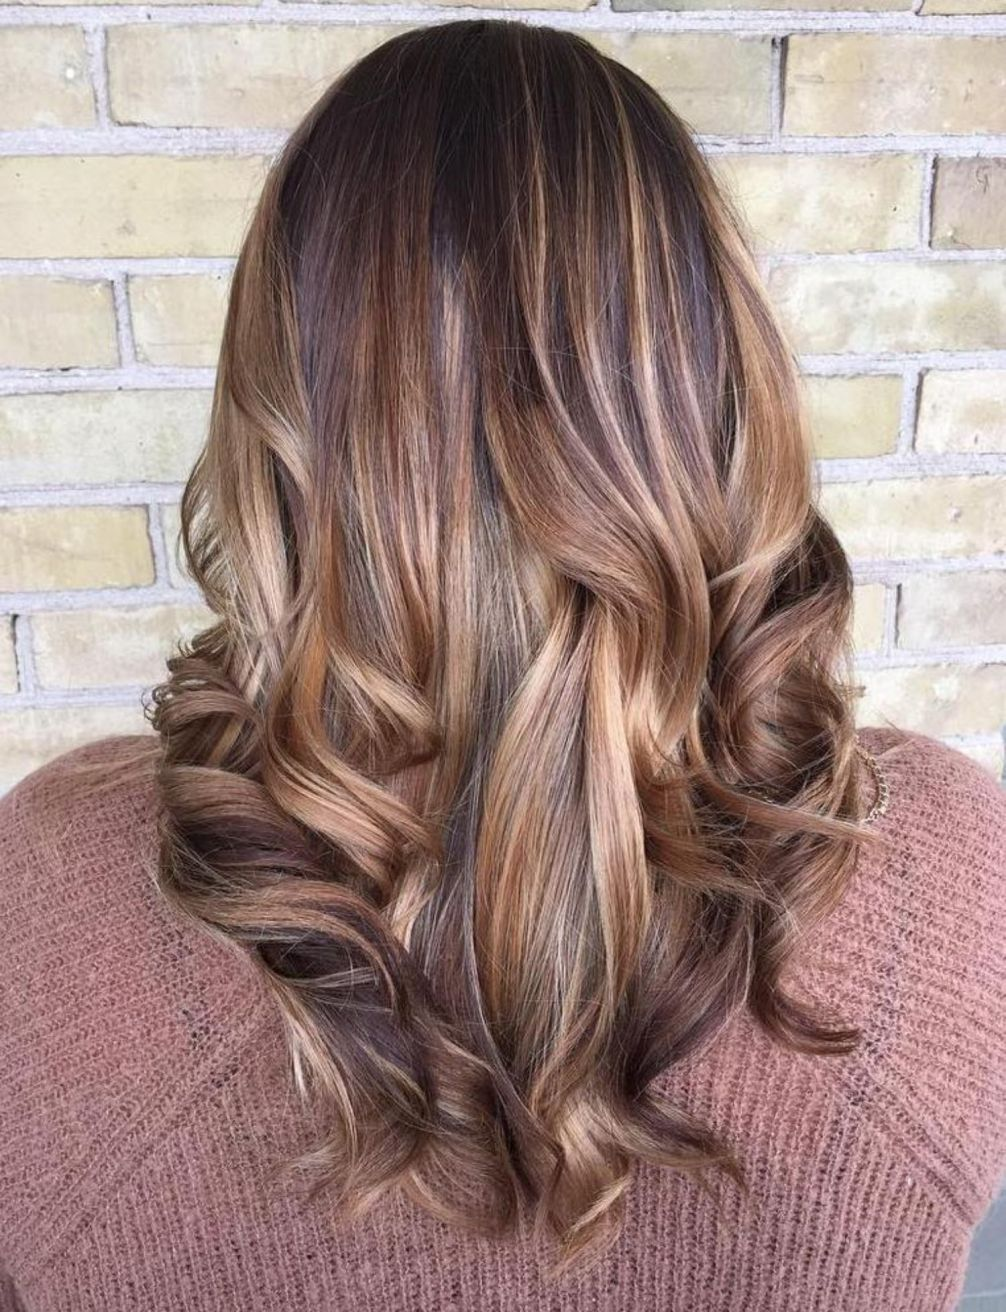 60 Hairstyles Featuring Dark Brown Hair with Highlights   Hair and ...